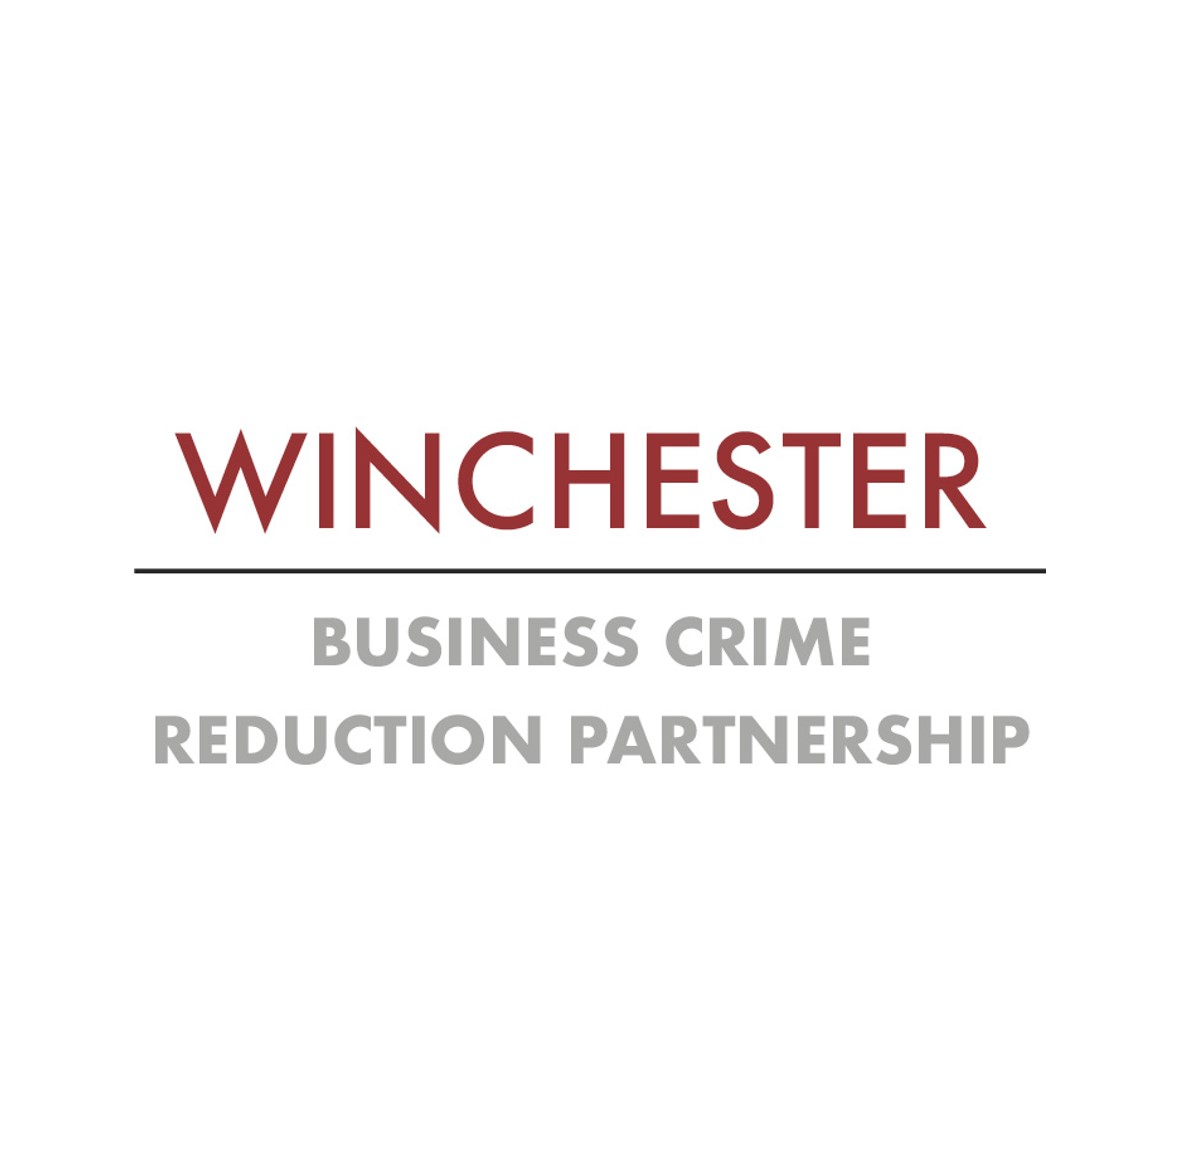 Business Crime Reduction Partnership